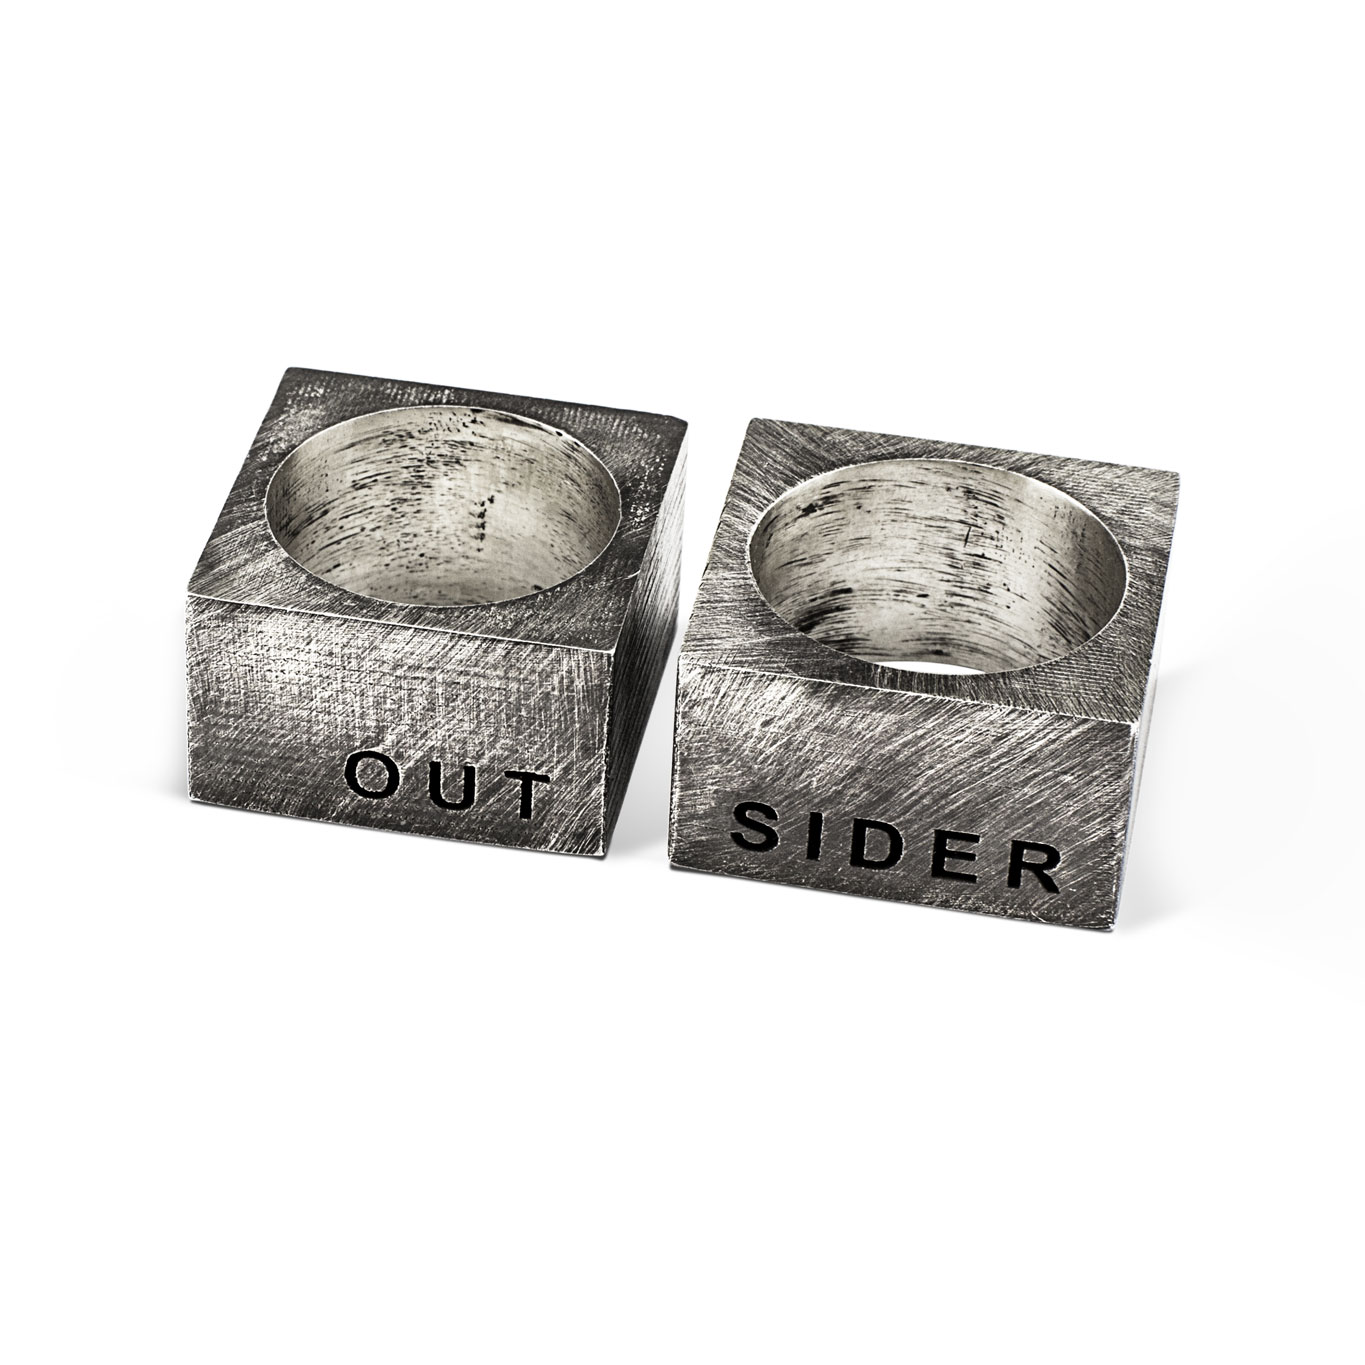 Out-Sider-02.jpg